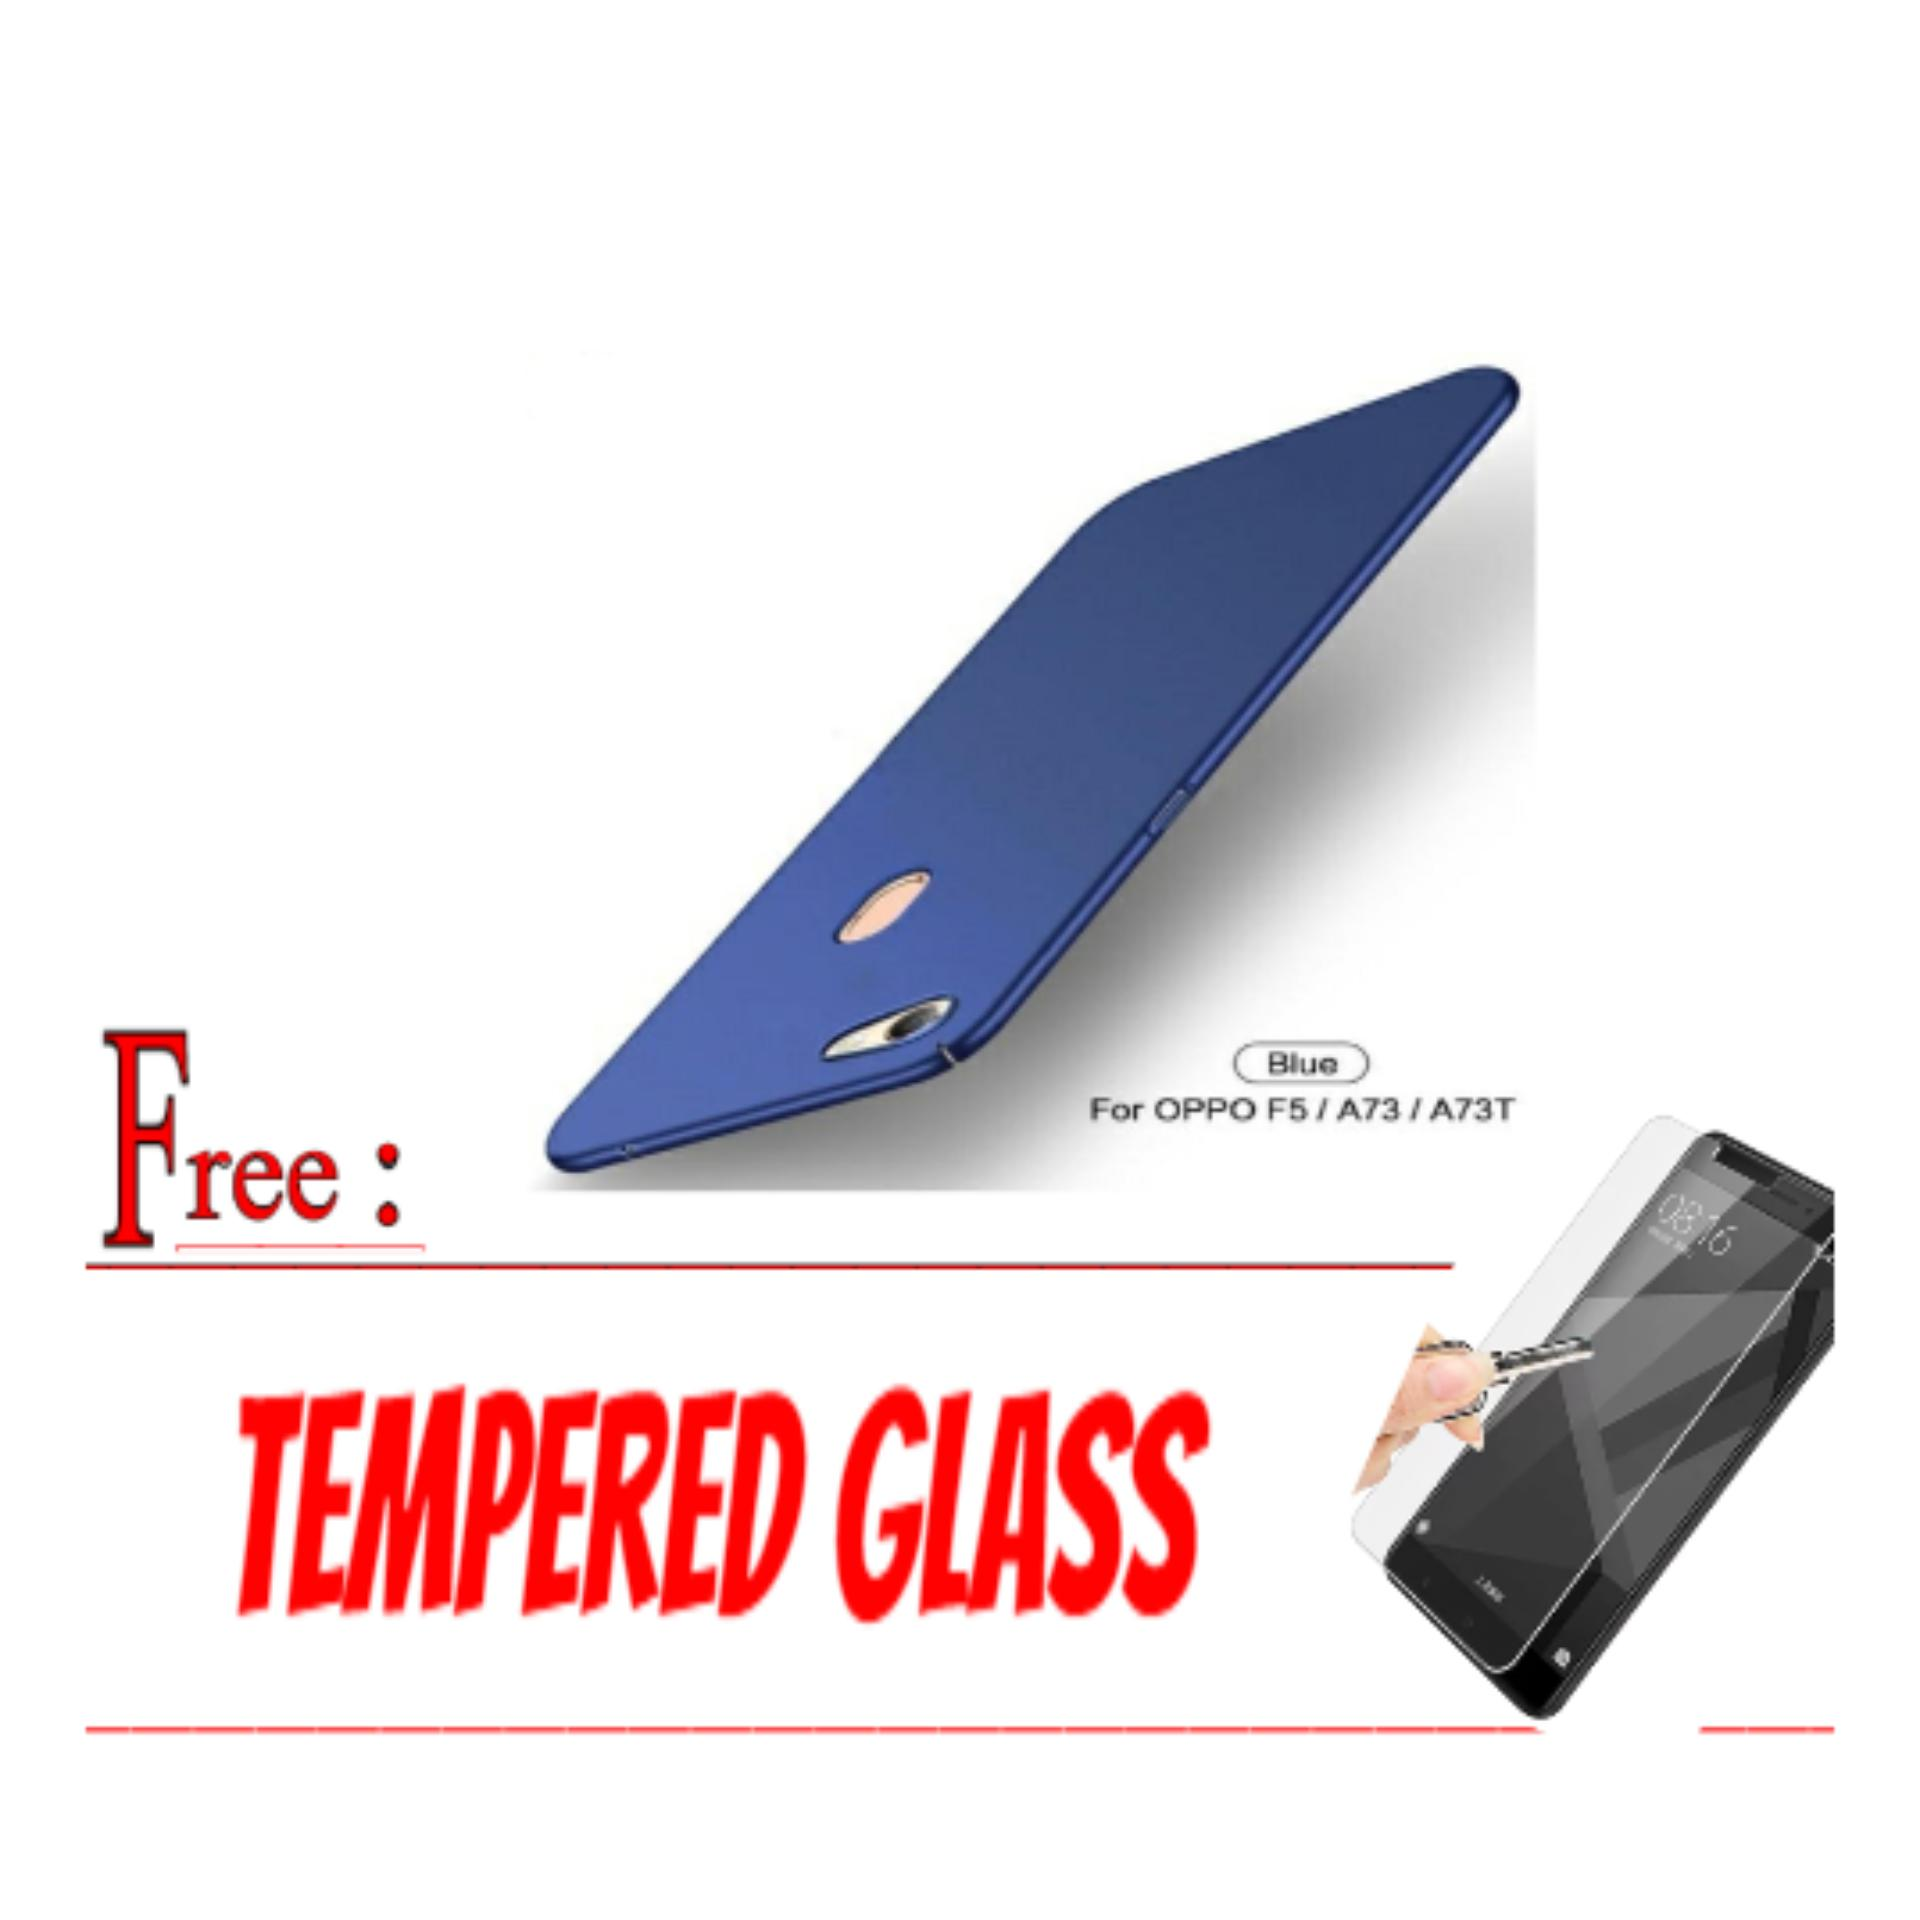 Hardcase Casing Cover For OPPO F5/A73/A73T (kL) Free Tempered Glass